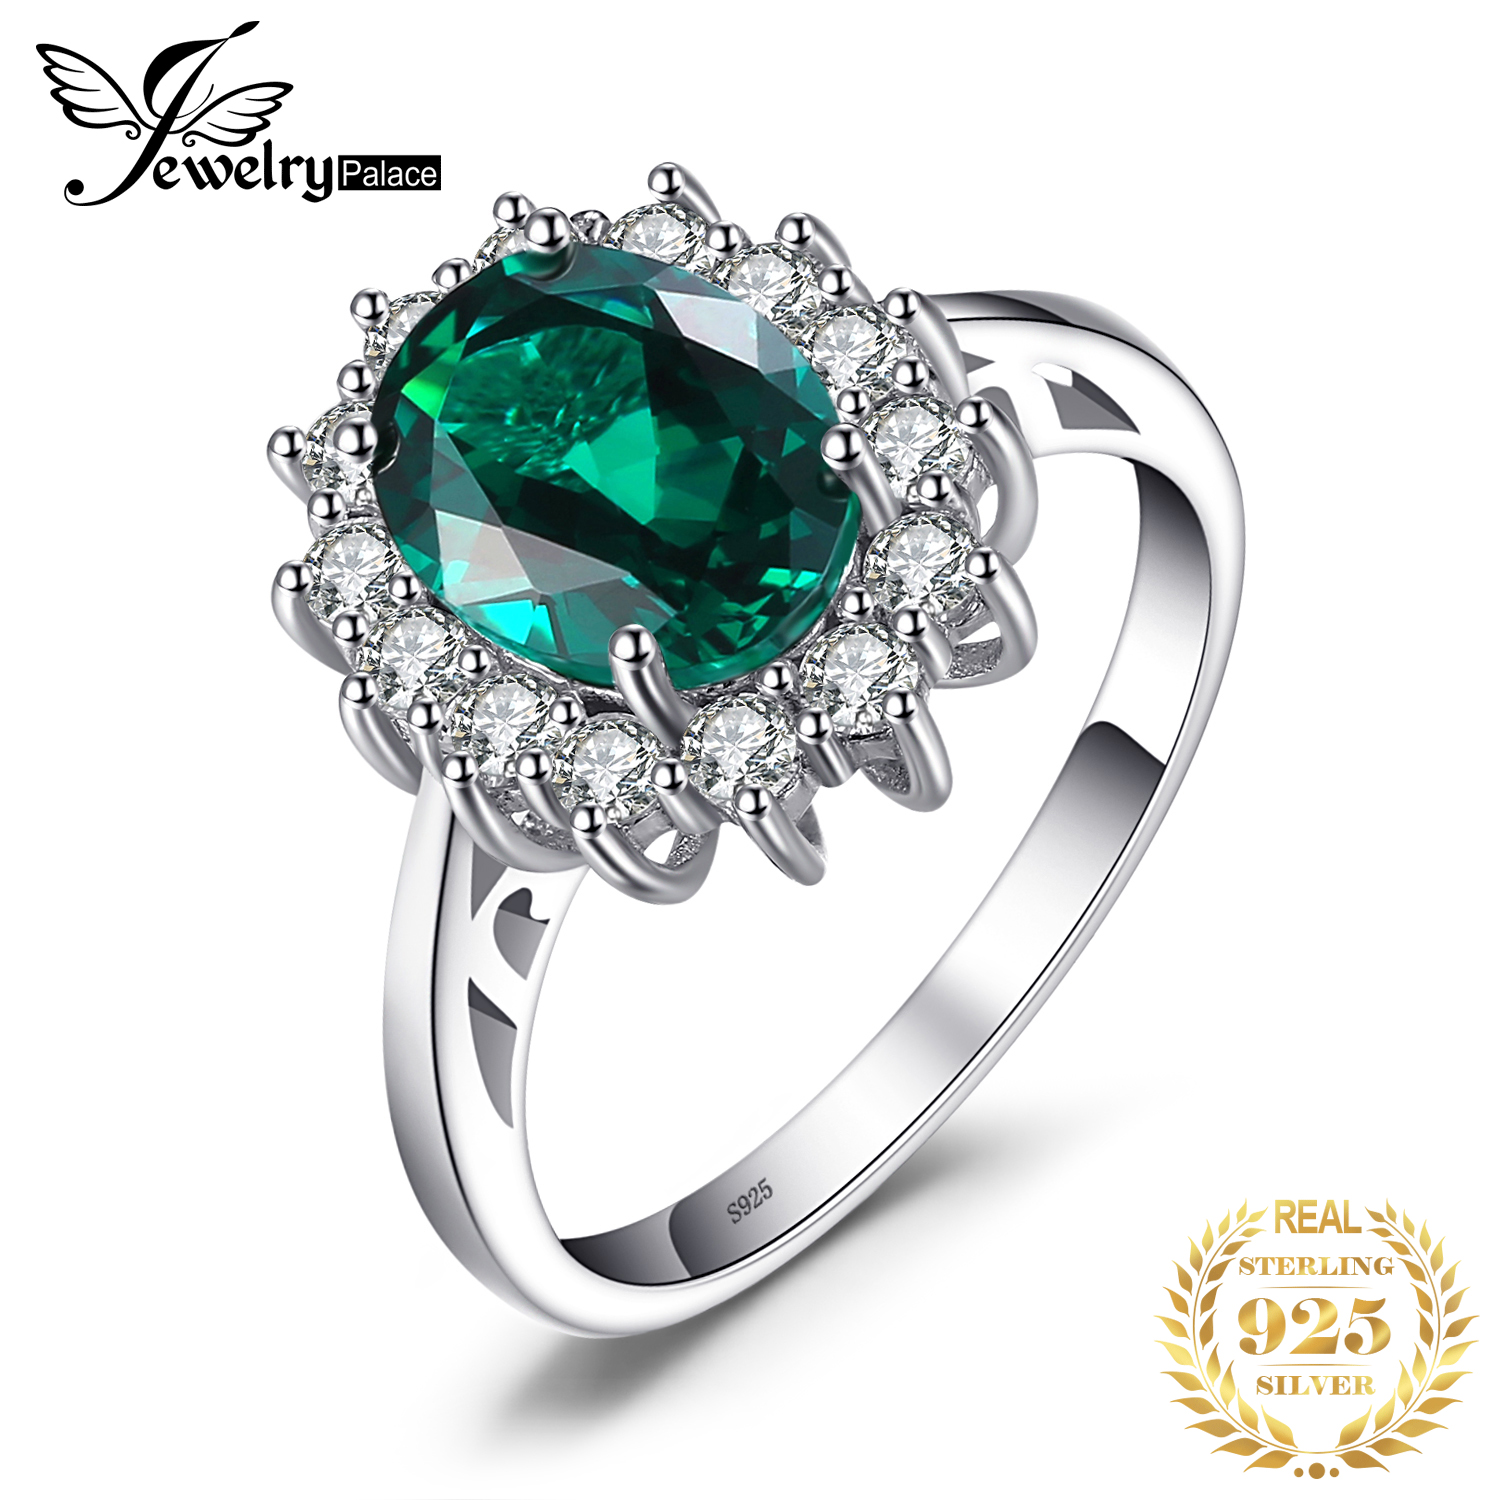 Jewpalace Princess Diana Simulated Emerald Ring 925 Sterling